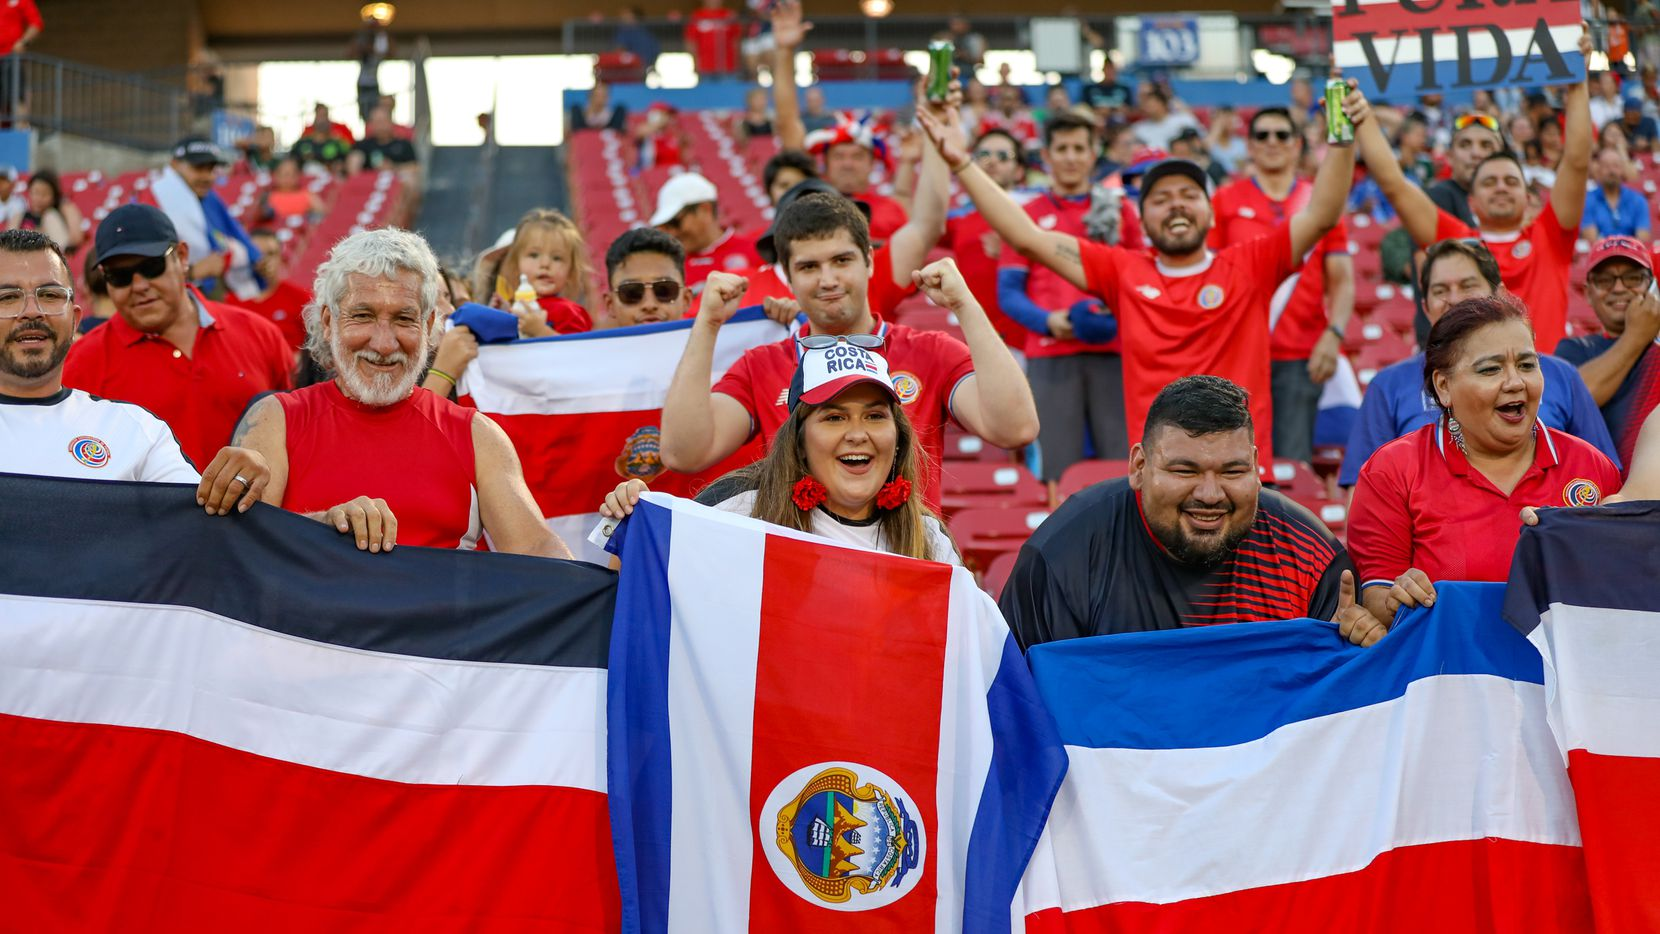 Costa Rica fans are ready for action at the 2019 Gold Cup at Toyota Stadium in Frisco, Texas. (6-20-19)